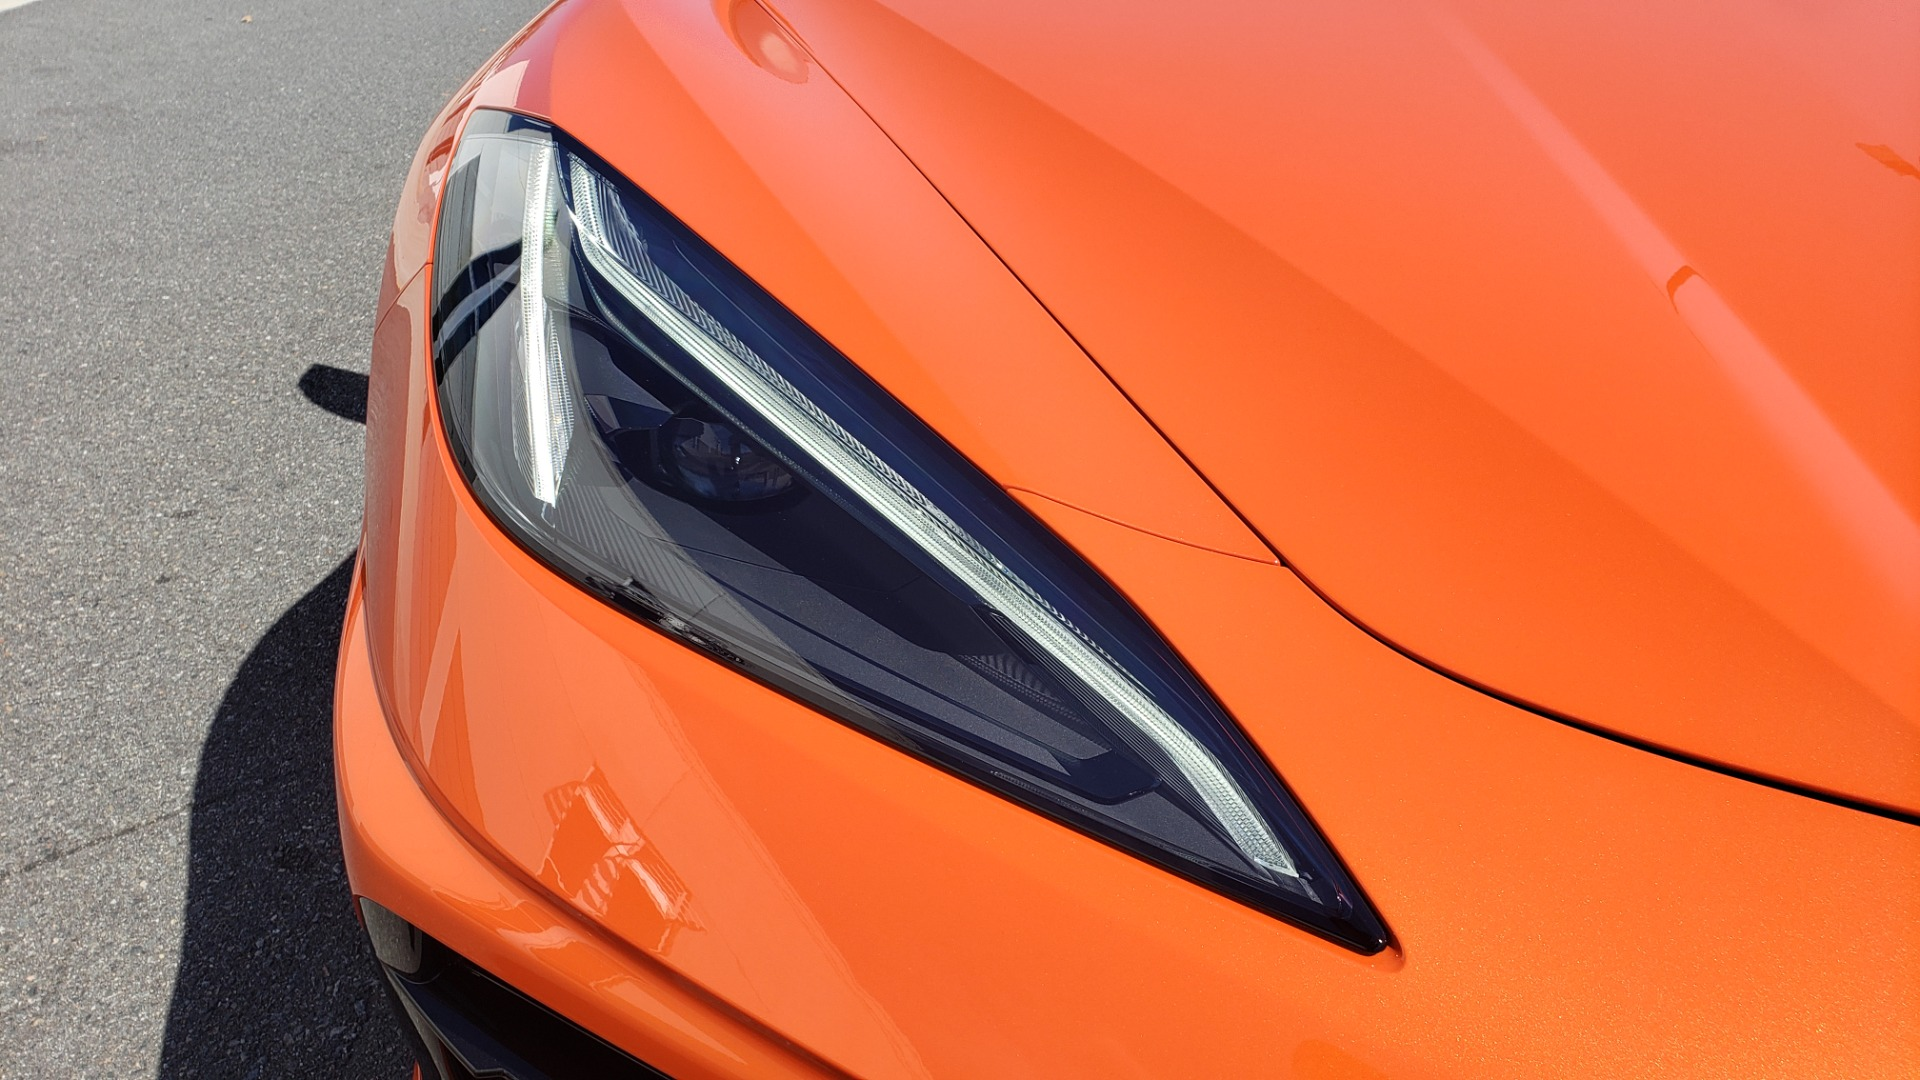 Used 2020 Chevrolet CORVETTE C8 STINGRAY 3LT COUPE / NAV / BOSE / CAMERA / LIKE NEW for sale Sold at Formula Imports in Charlotte NC 28227 38